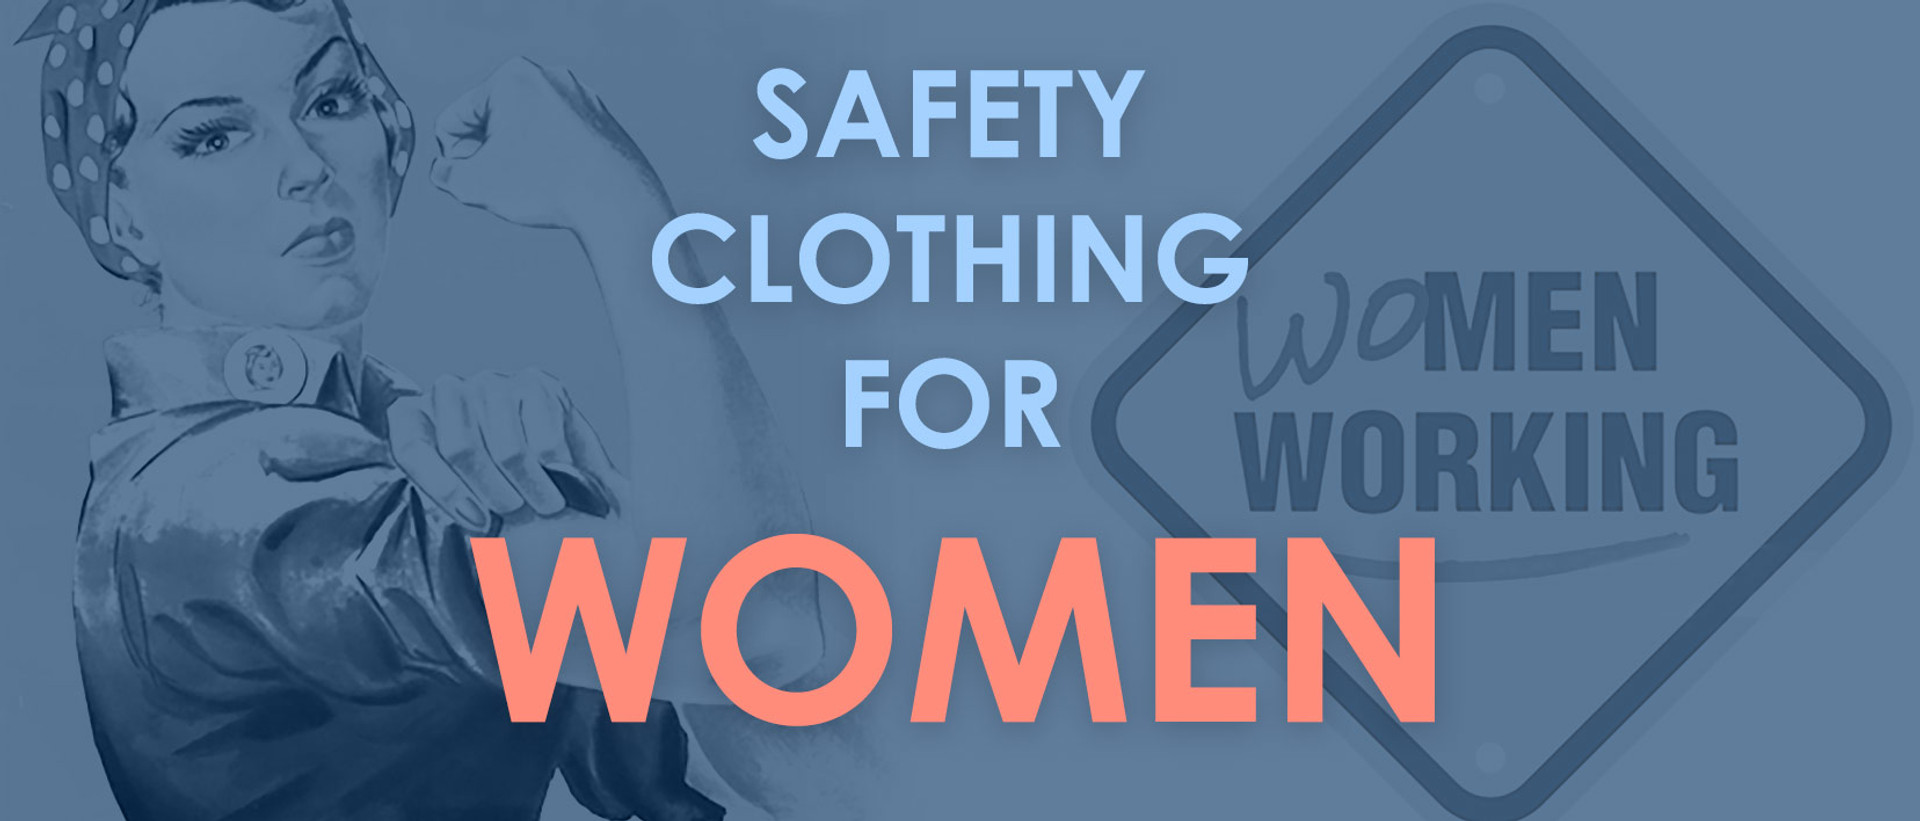 Safety Clothing for Women